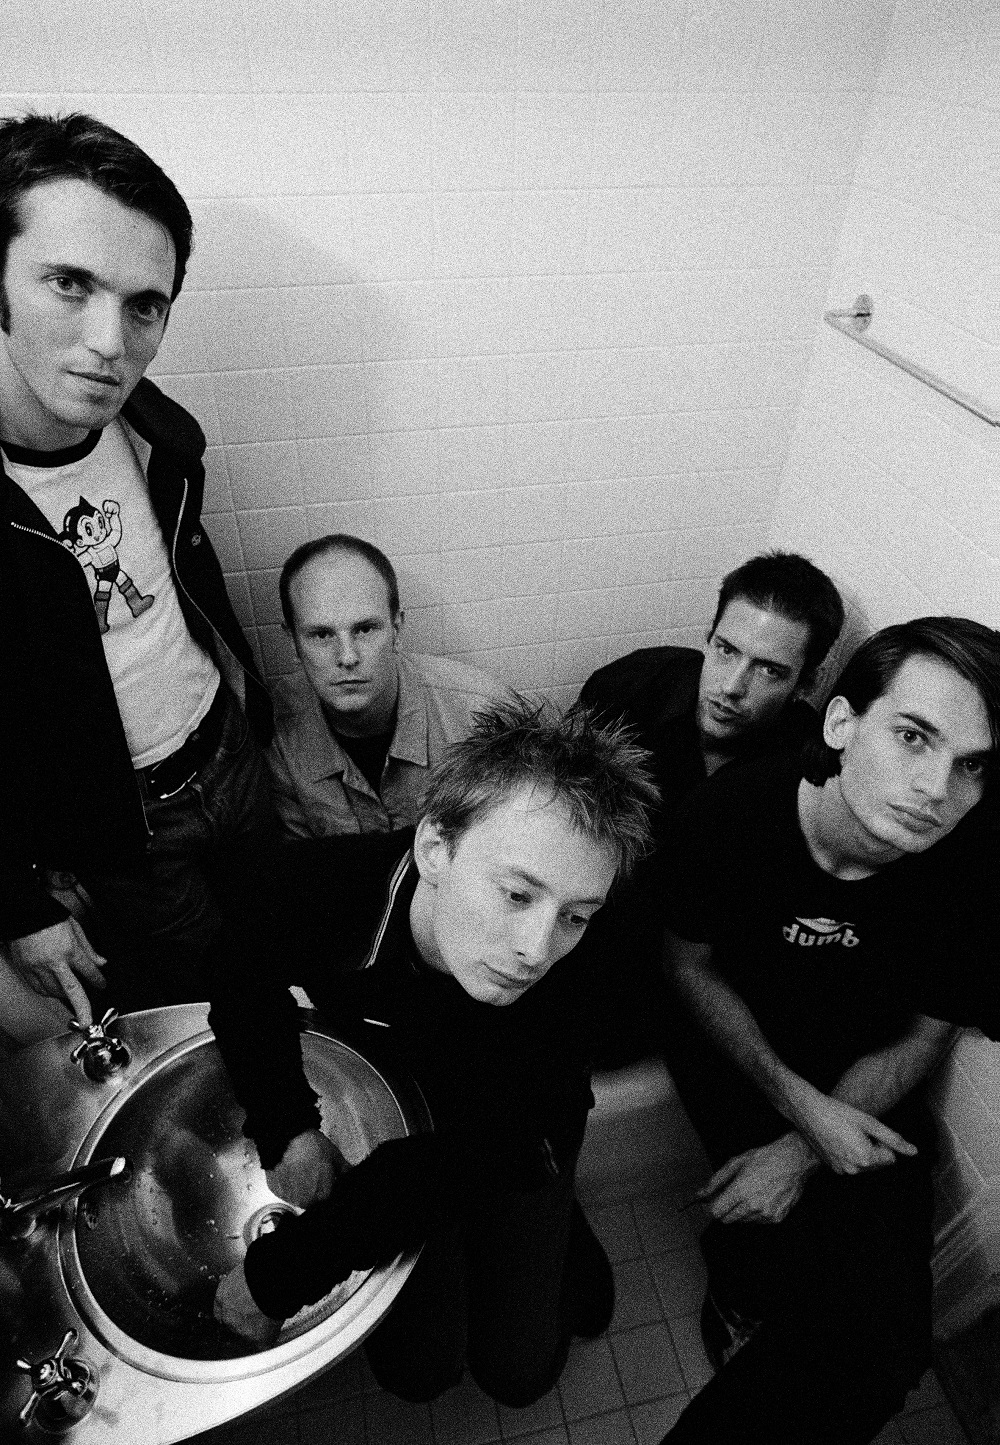 Radiohead by Pat Pope on Silver Magazine www.silvermagazine.co.uk